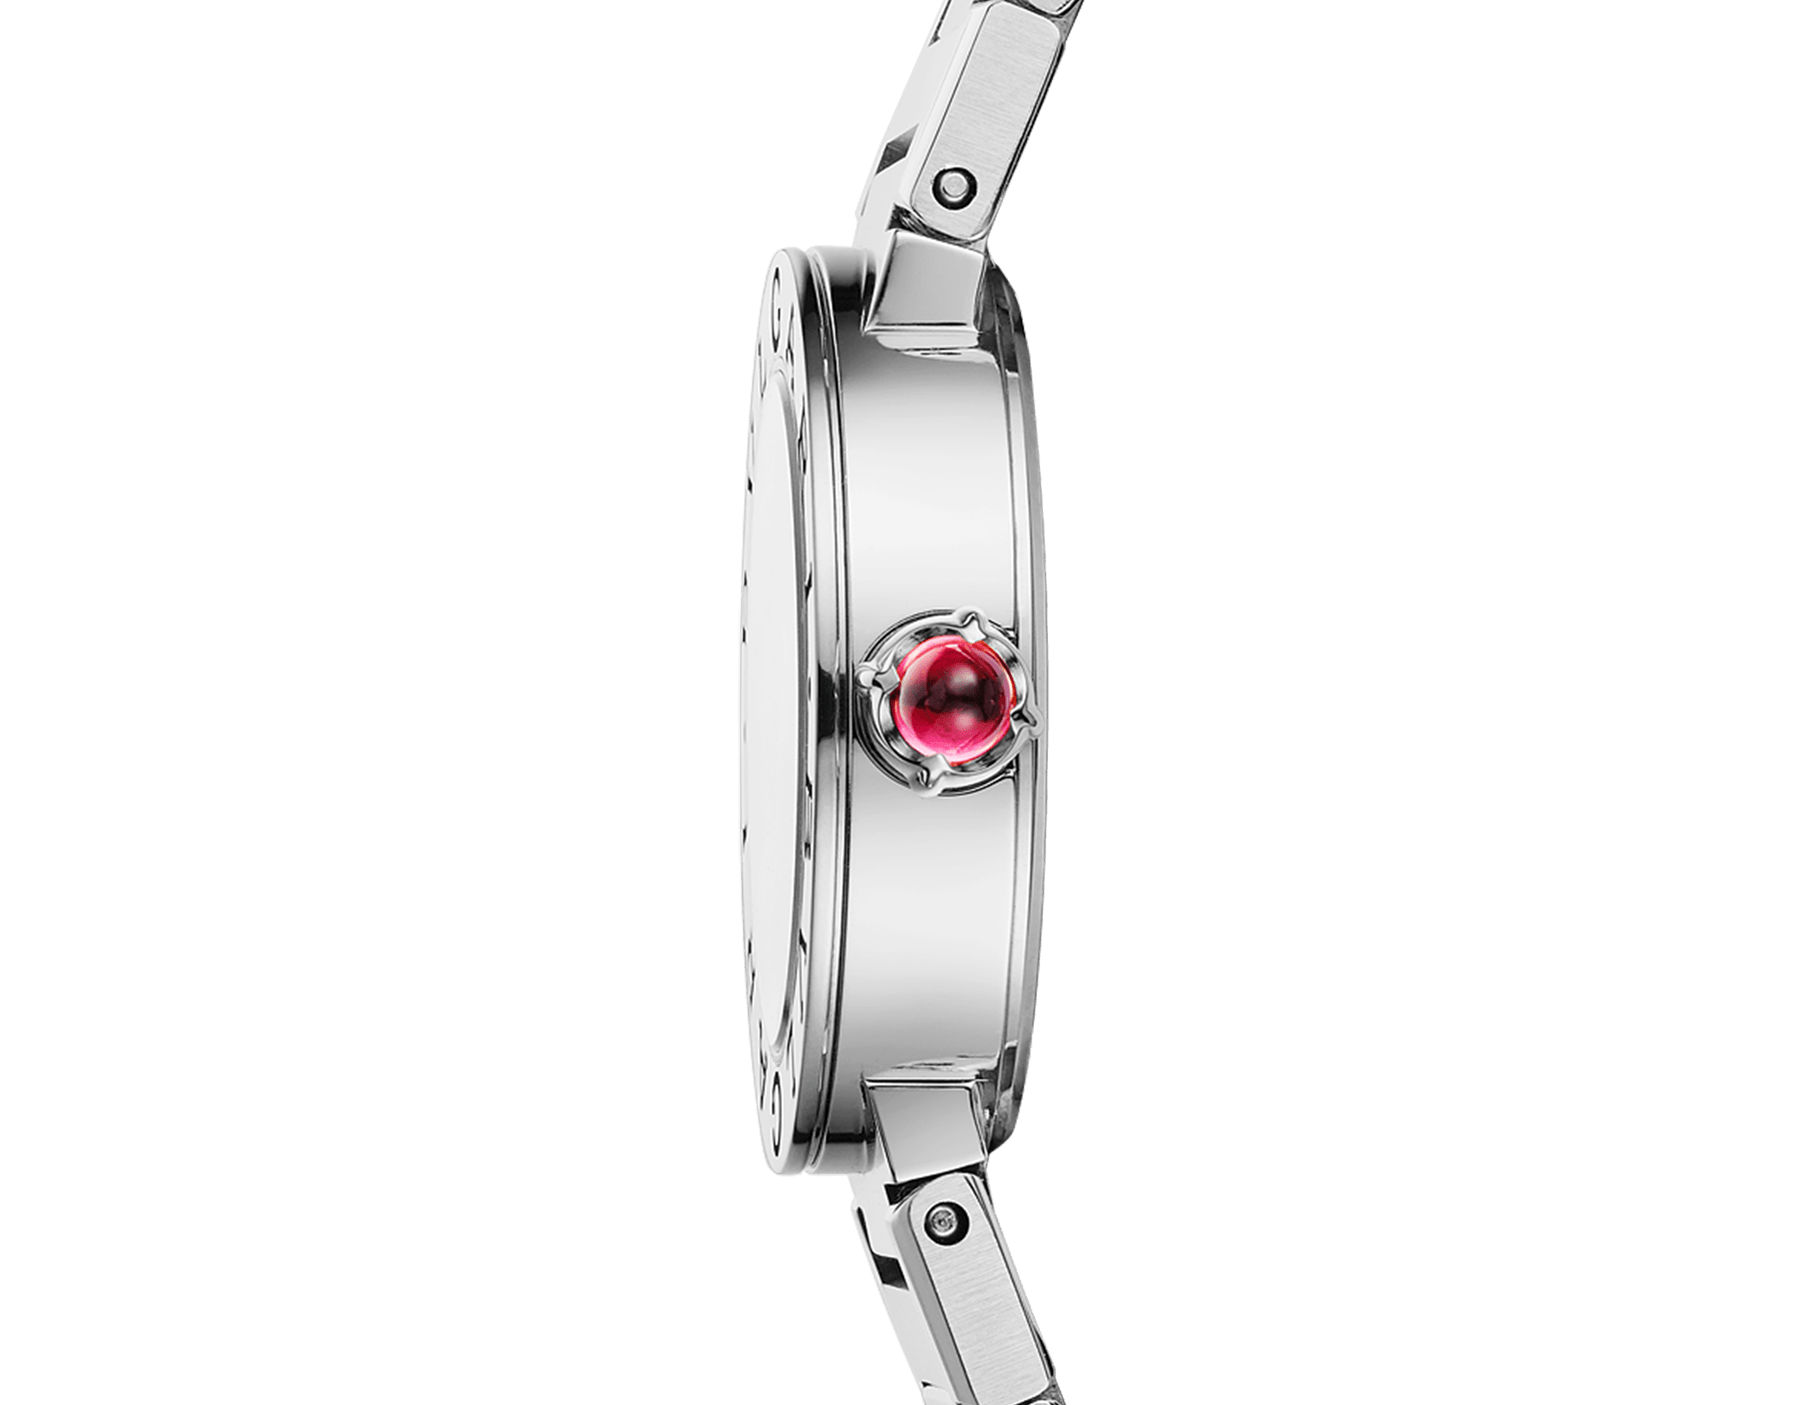 BVLGARI BVLGARI watch in stainless steel case and bracelet, stainless steel bezel engraved with double logo and mother-of-pearl dial 103217 image 3